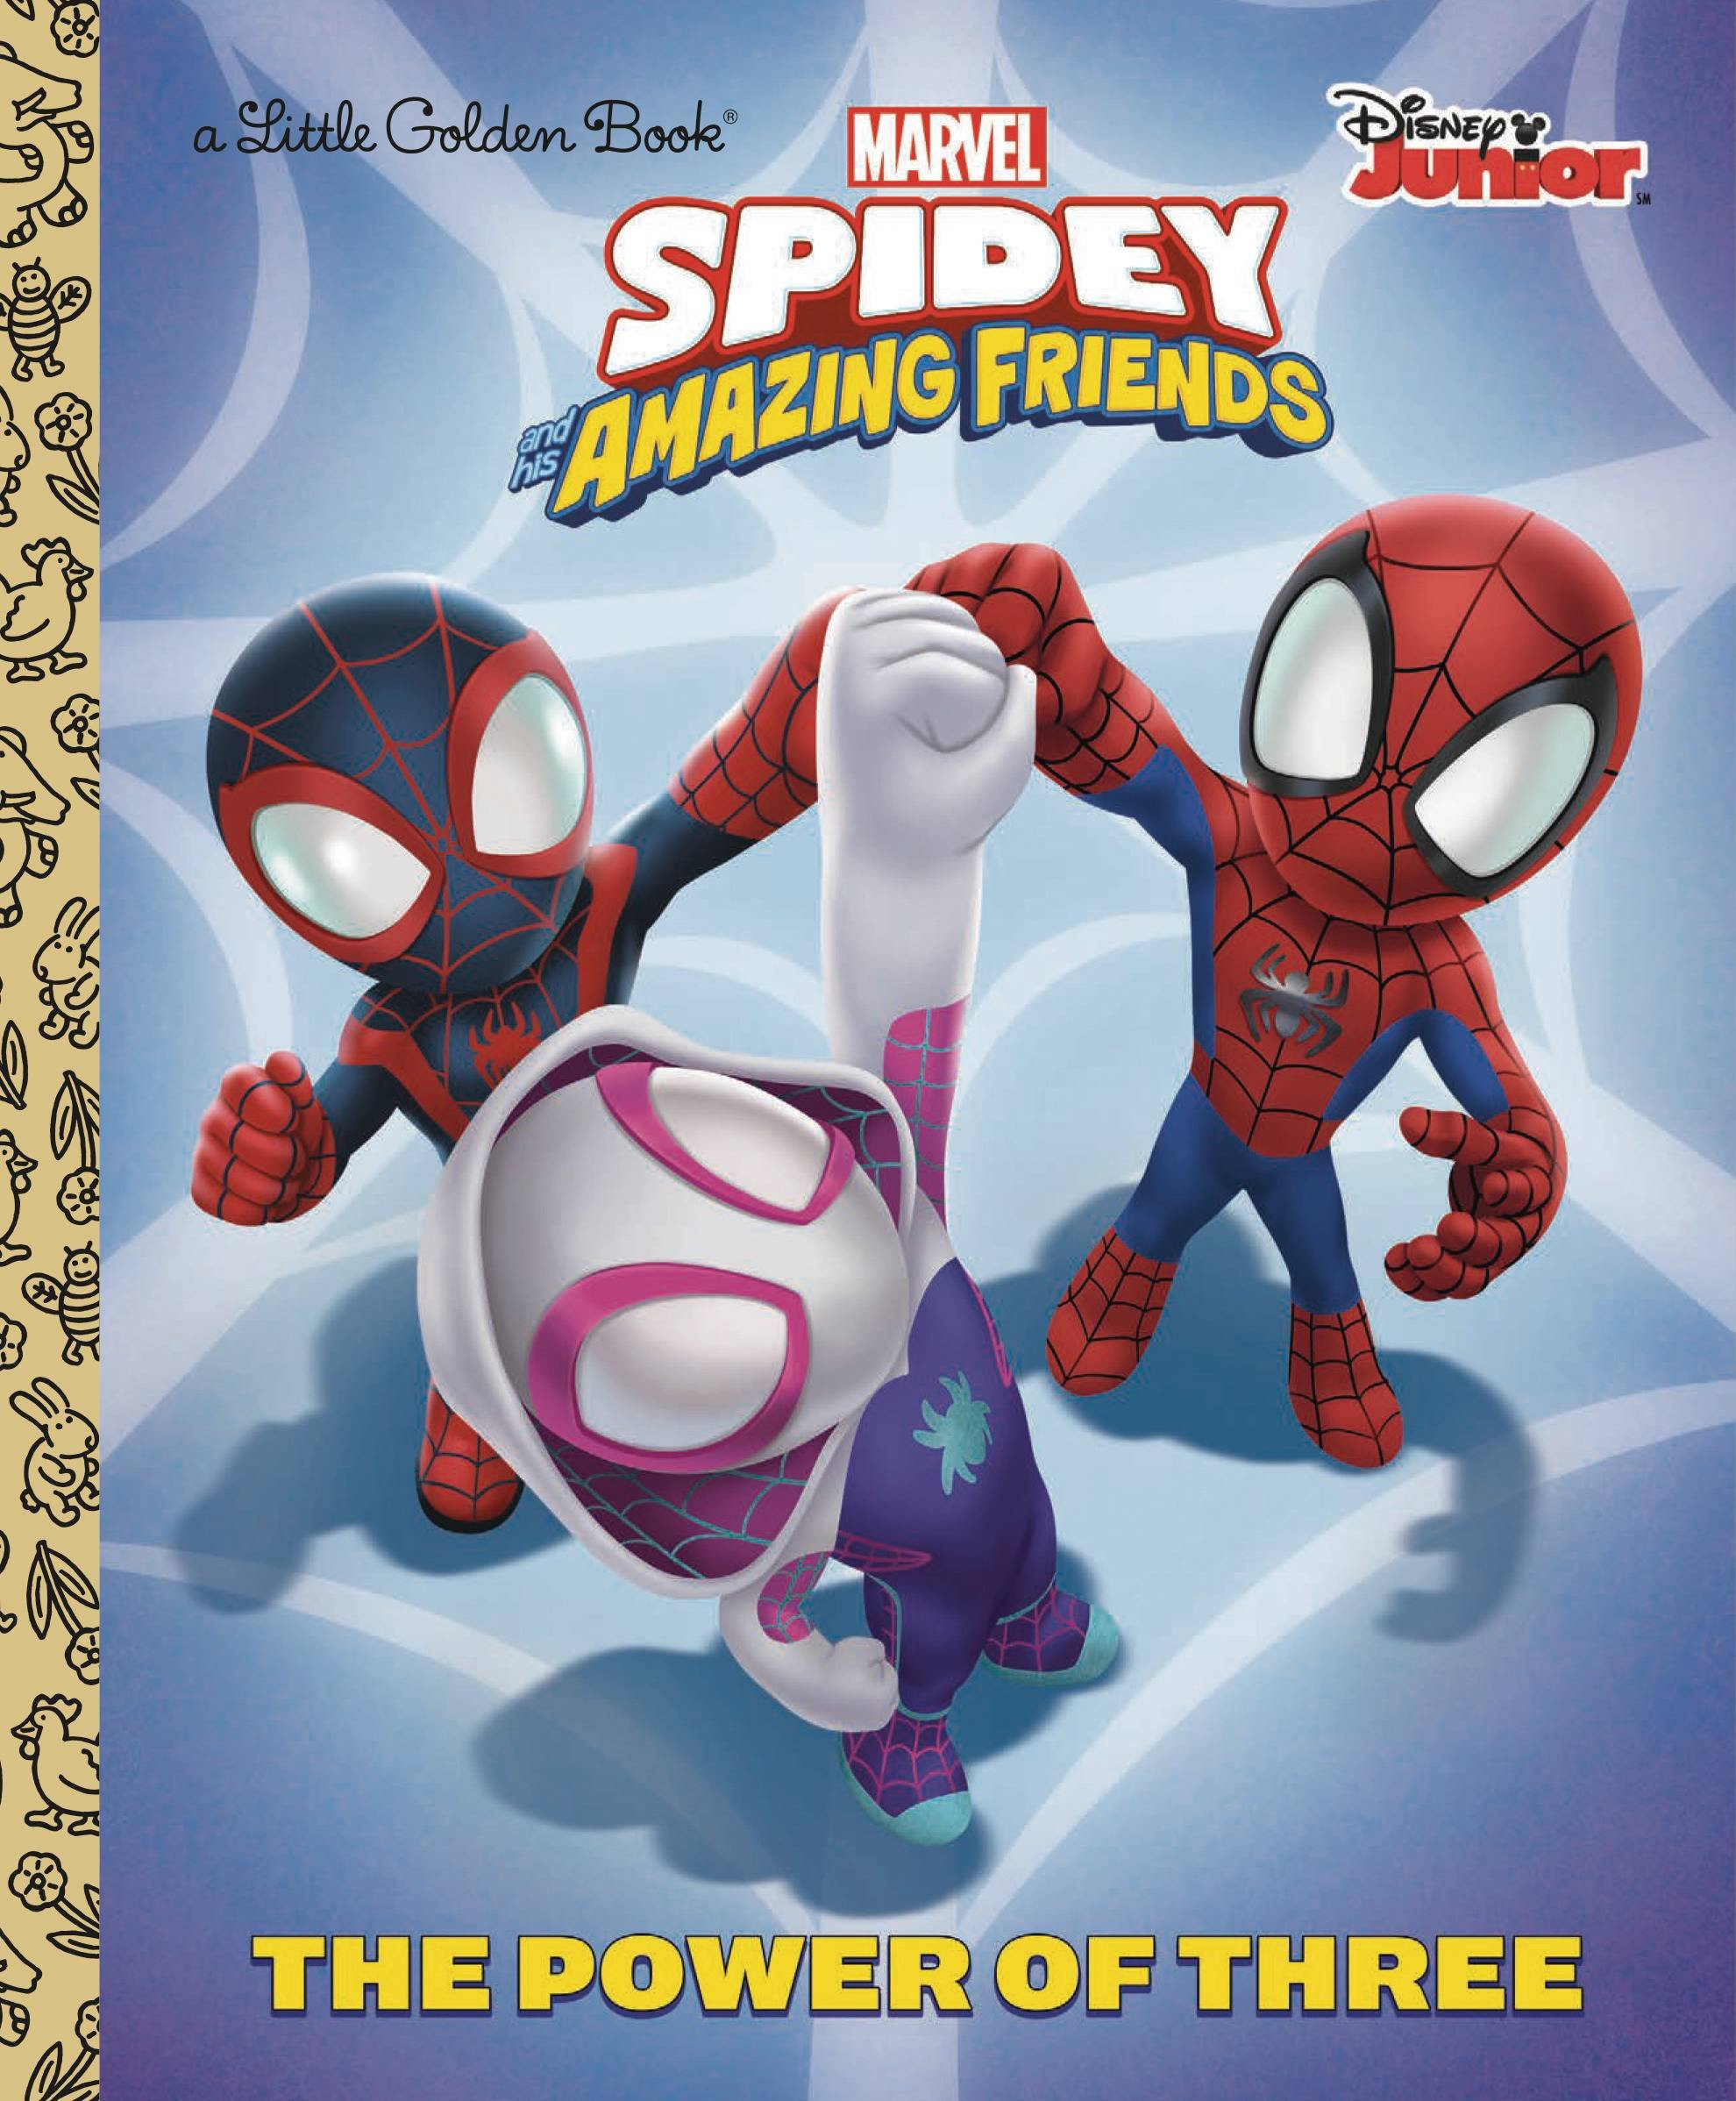 Spider-Man and His Amazing Friends - Power of 3 Golden Book